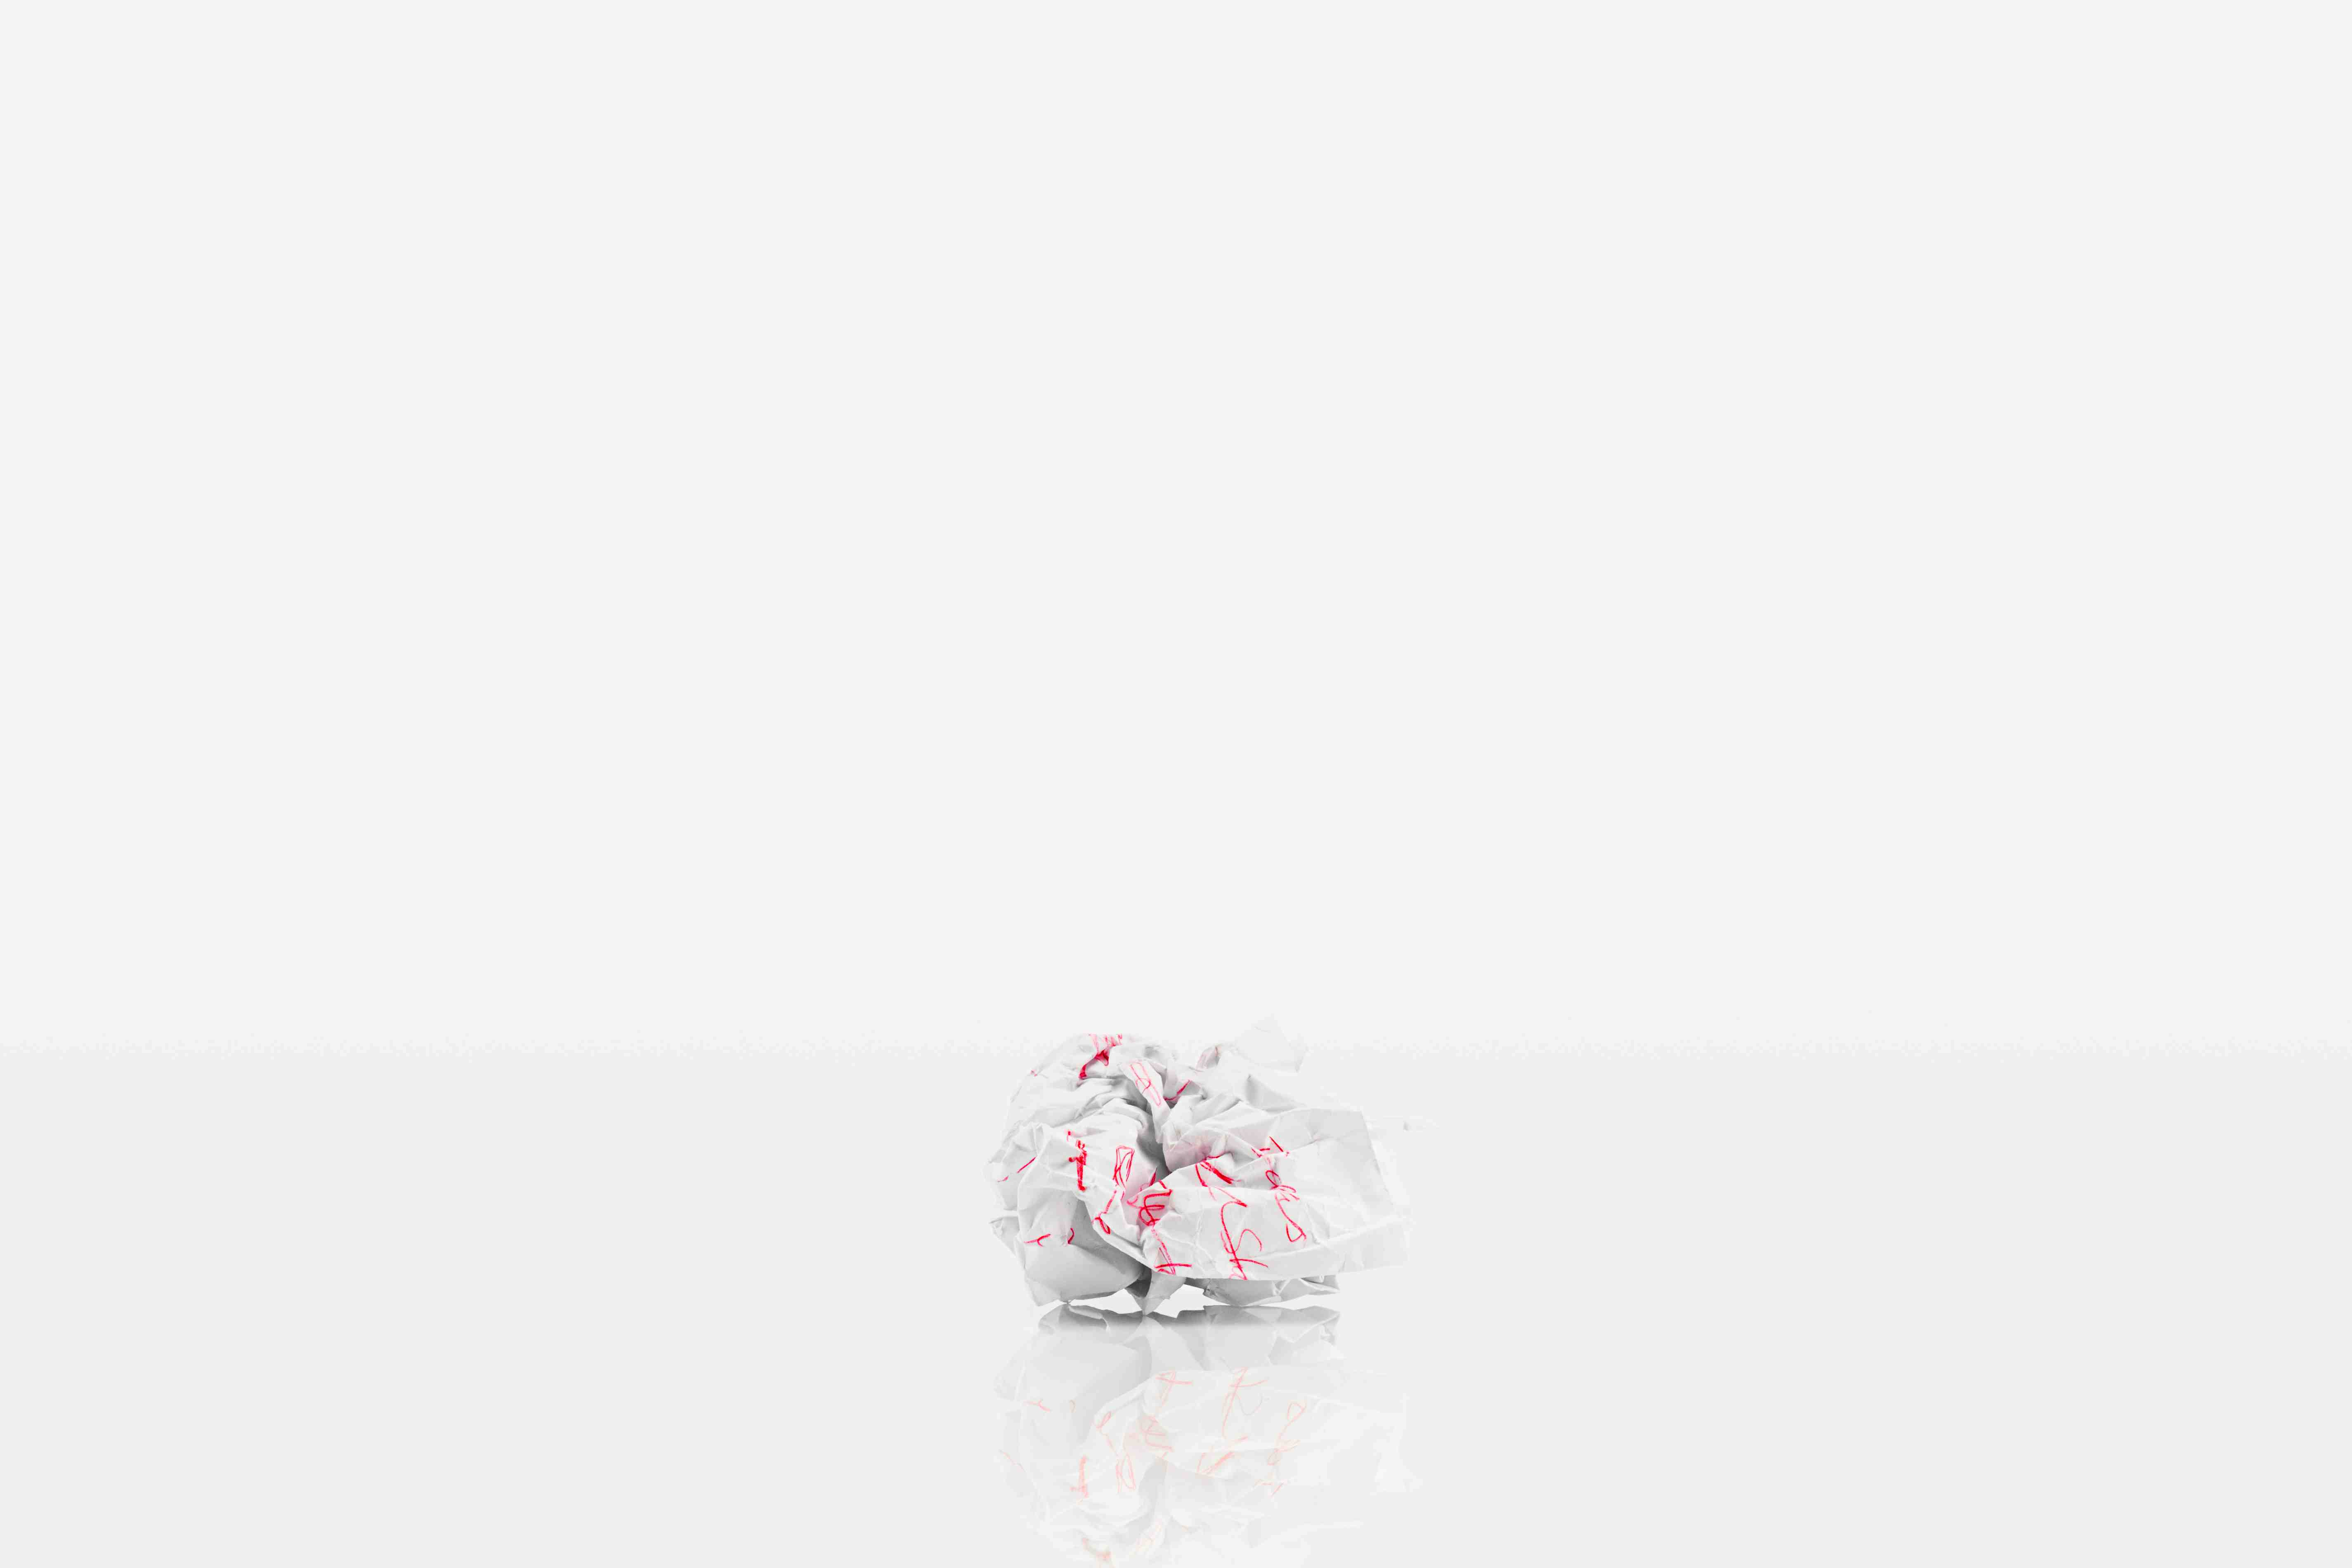 Image of a Crumpled Piece of Paper